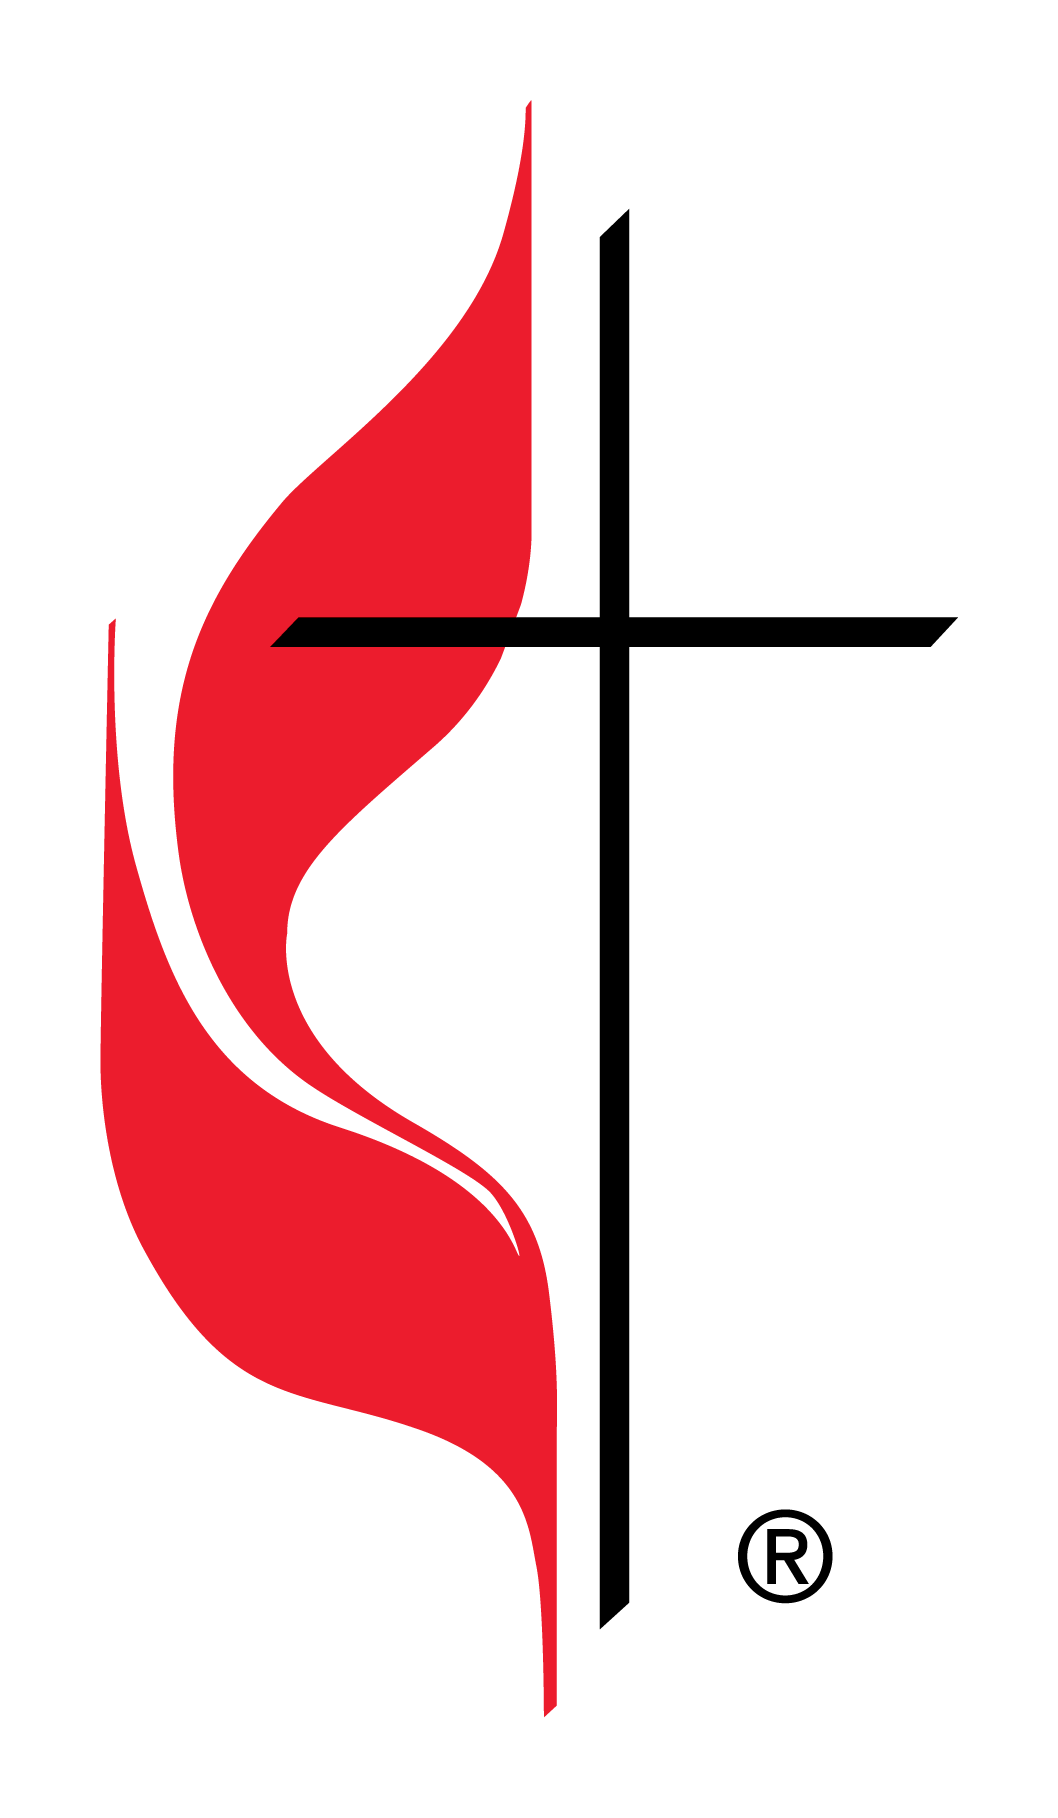 official cross and flame logo of the united methodist church rh pinterest com Christian Clip Art Cross and Flame free methodist cross and flame clipart